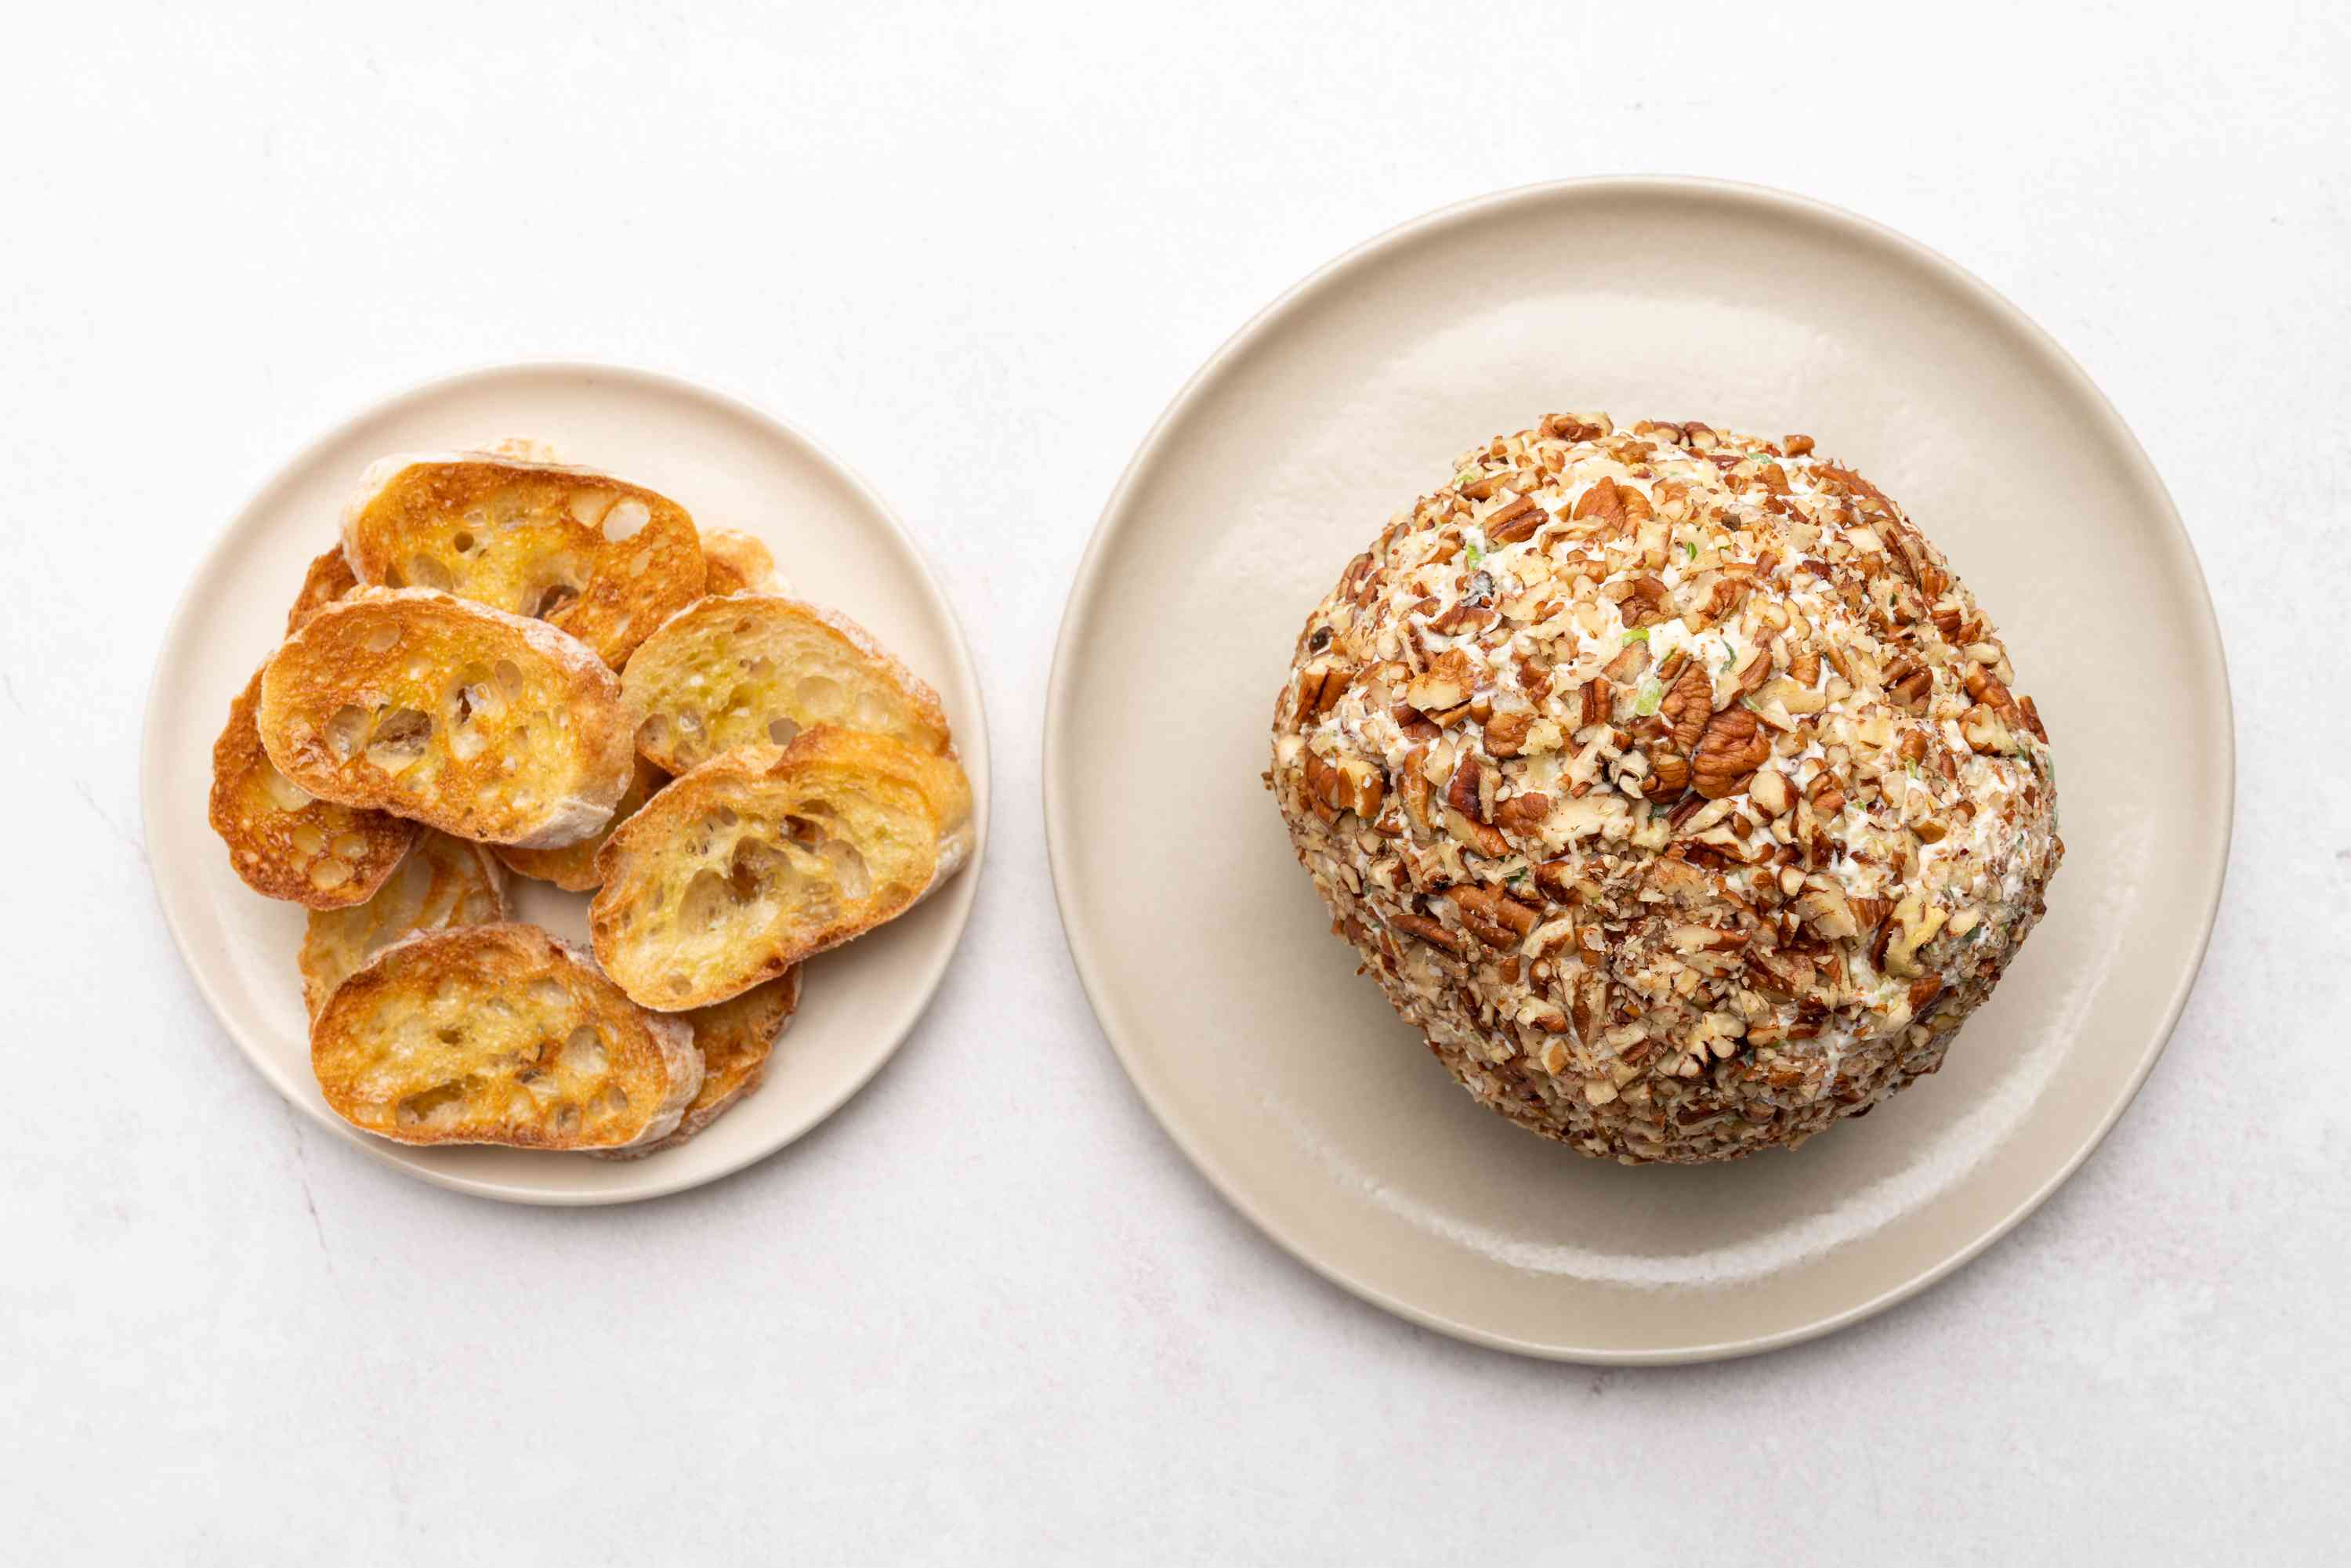 Pineapple Cheese Ball served with toasted bread